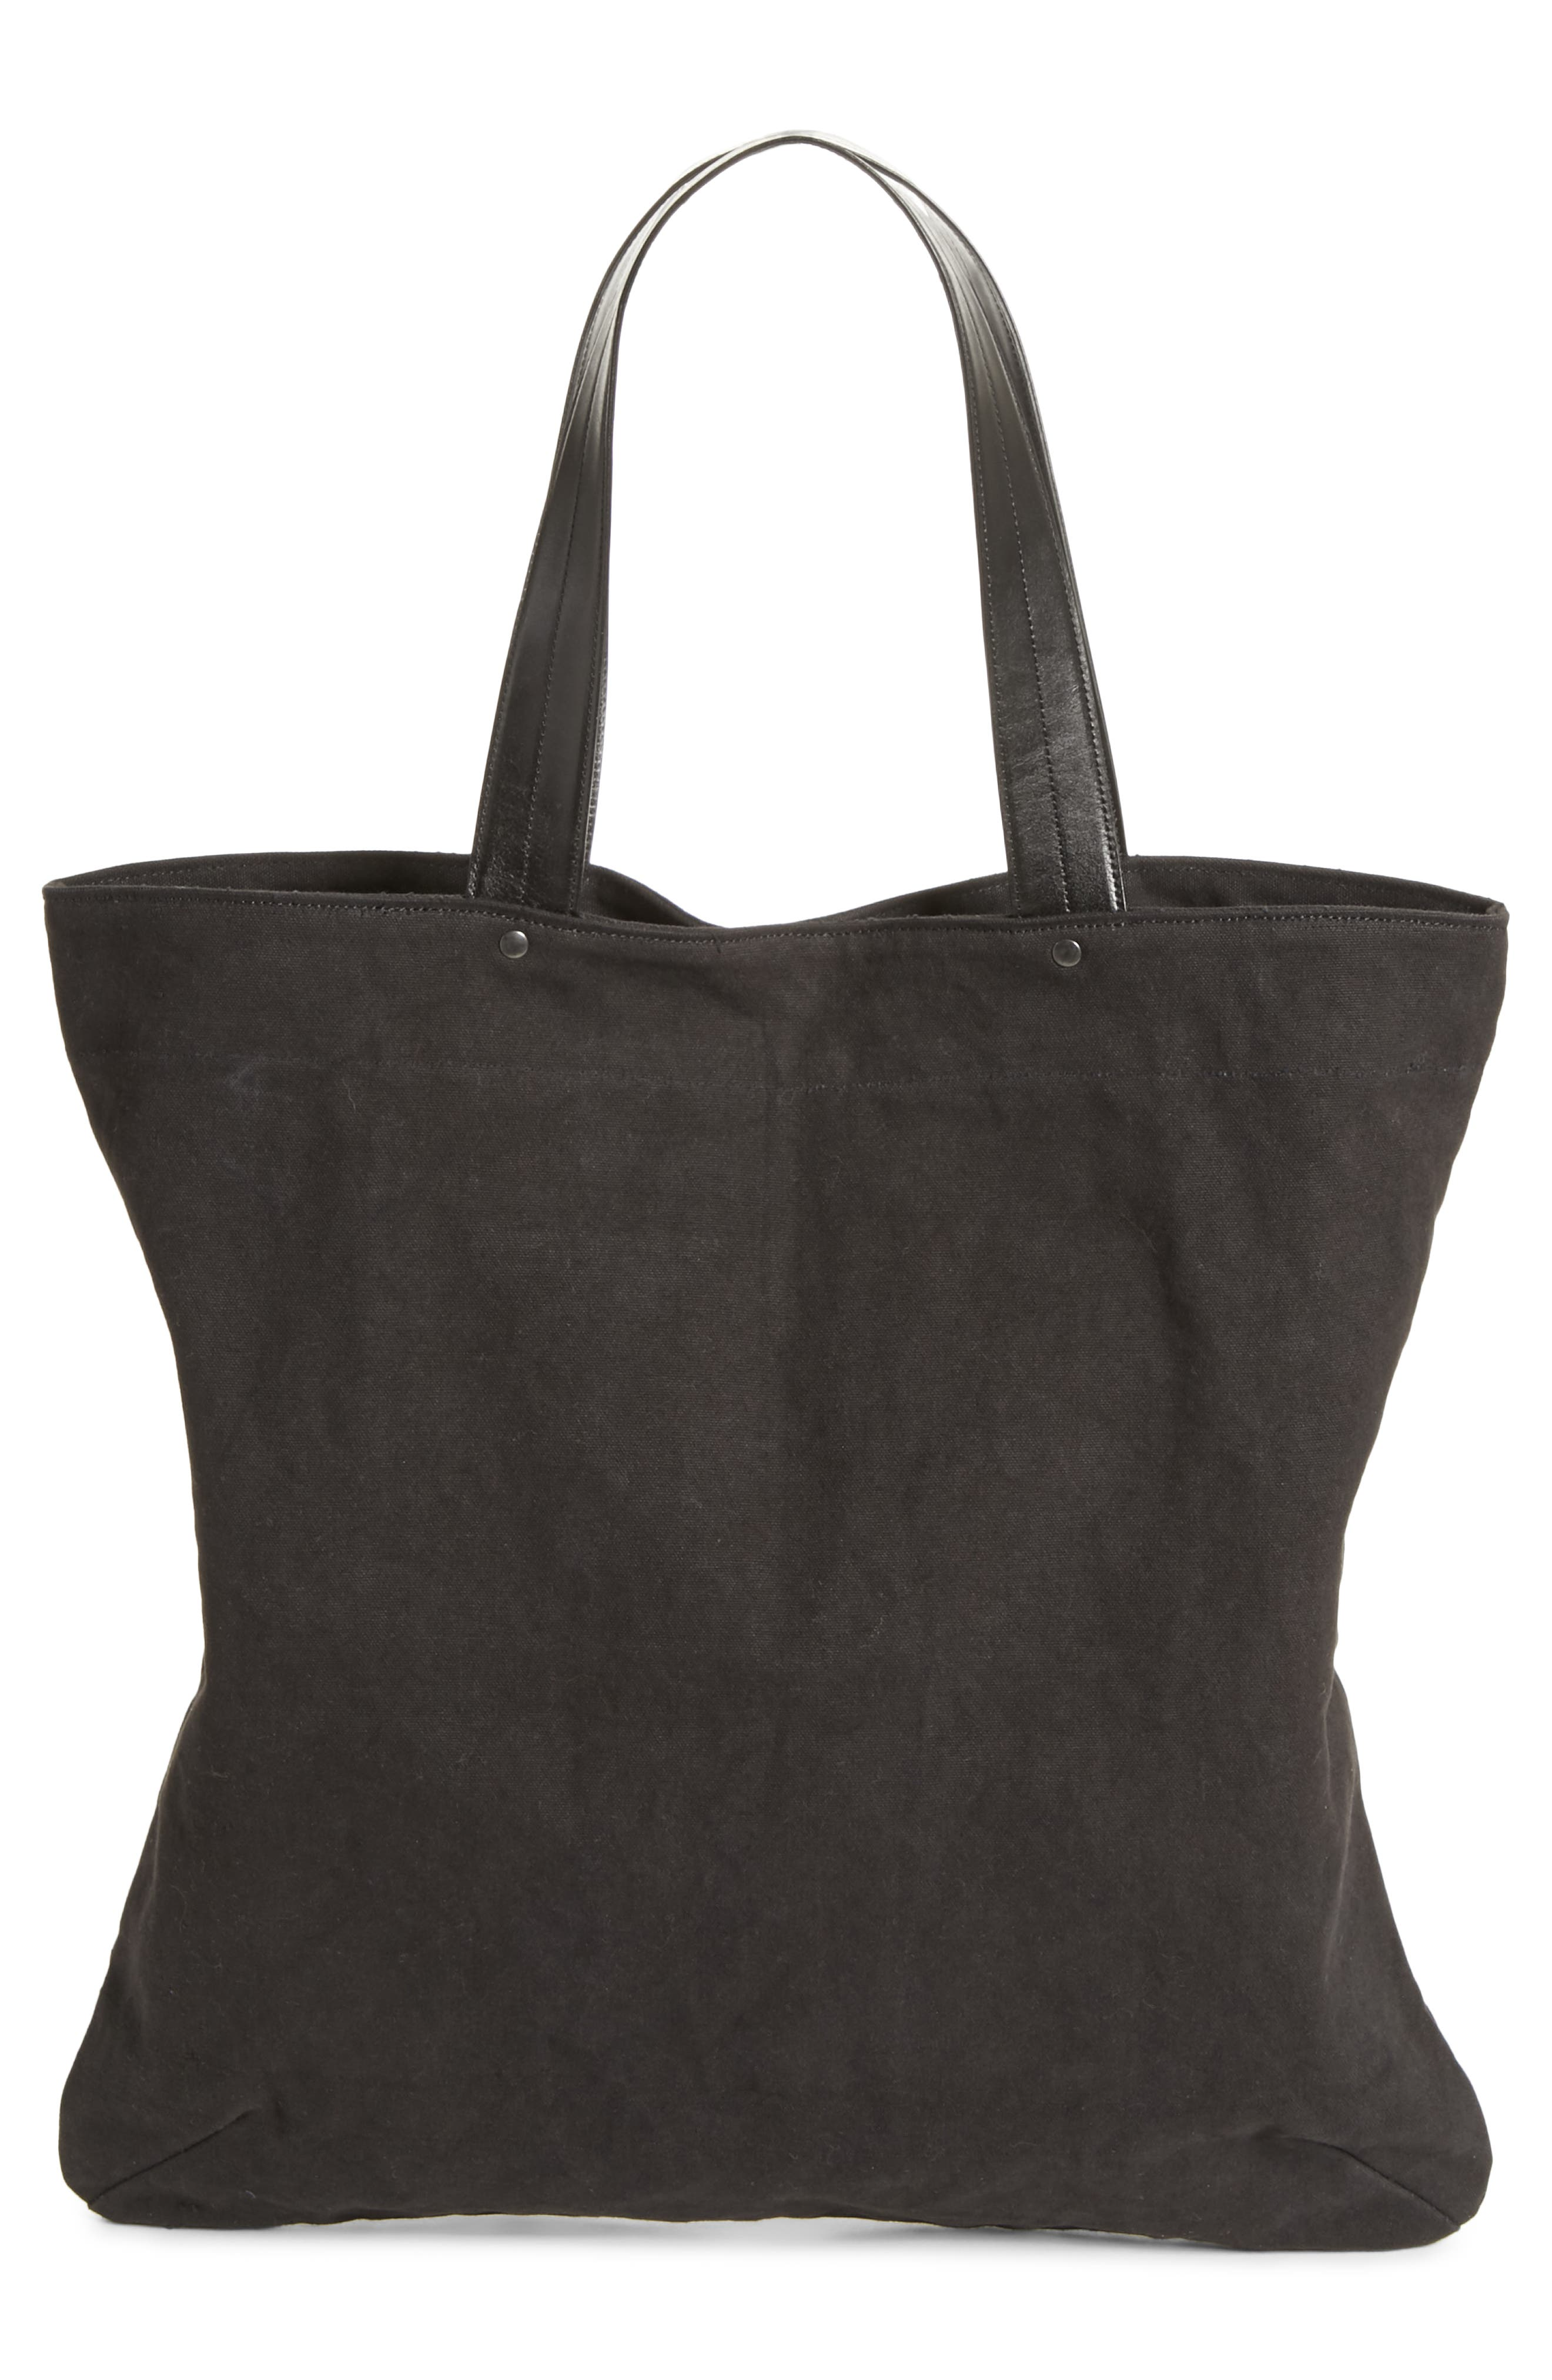 Embroidered Canvas Tote Bag,                             Alternate thumbnail 3, color,                             001